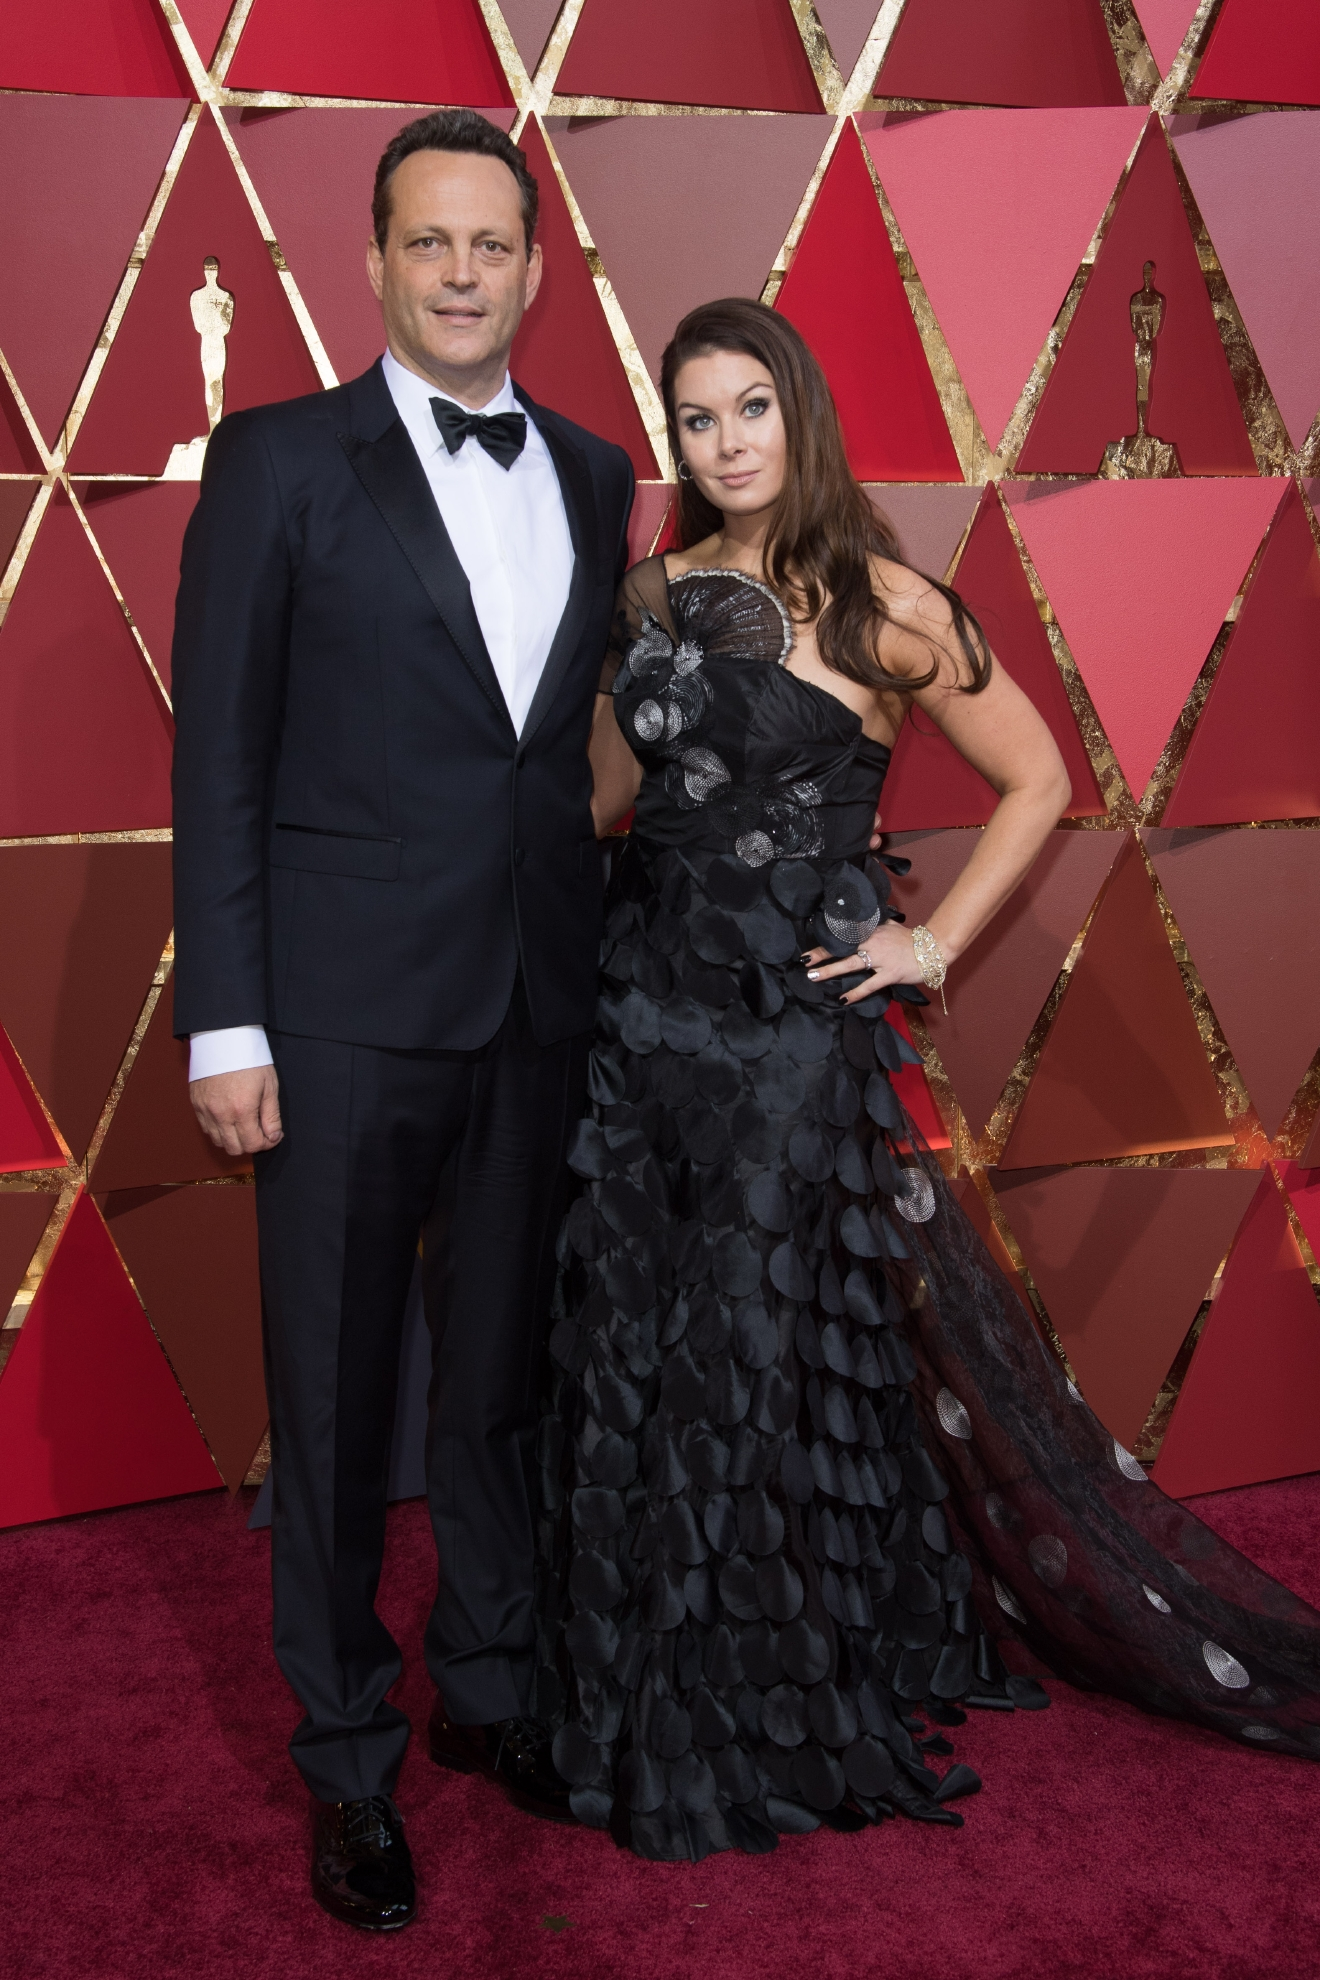 Actor Vince Vaughn and wife, Kyla Weber, arrive on the red carpet at The 89th Oscars® at the Dolby® Theatre in Hollywood, CA on Sunday, February 26, 2017. (A.M.P.A.S.)